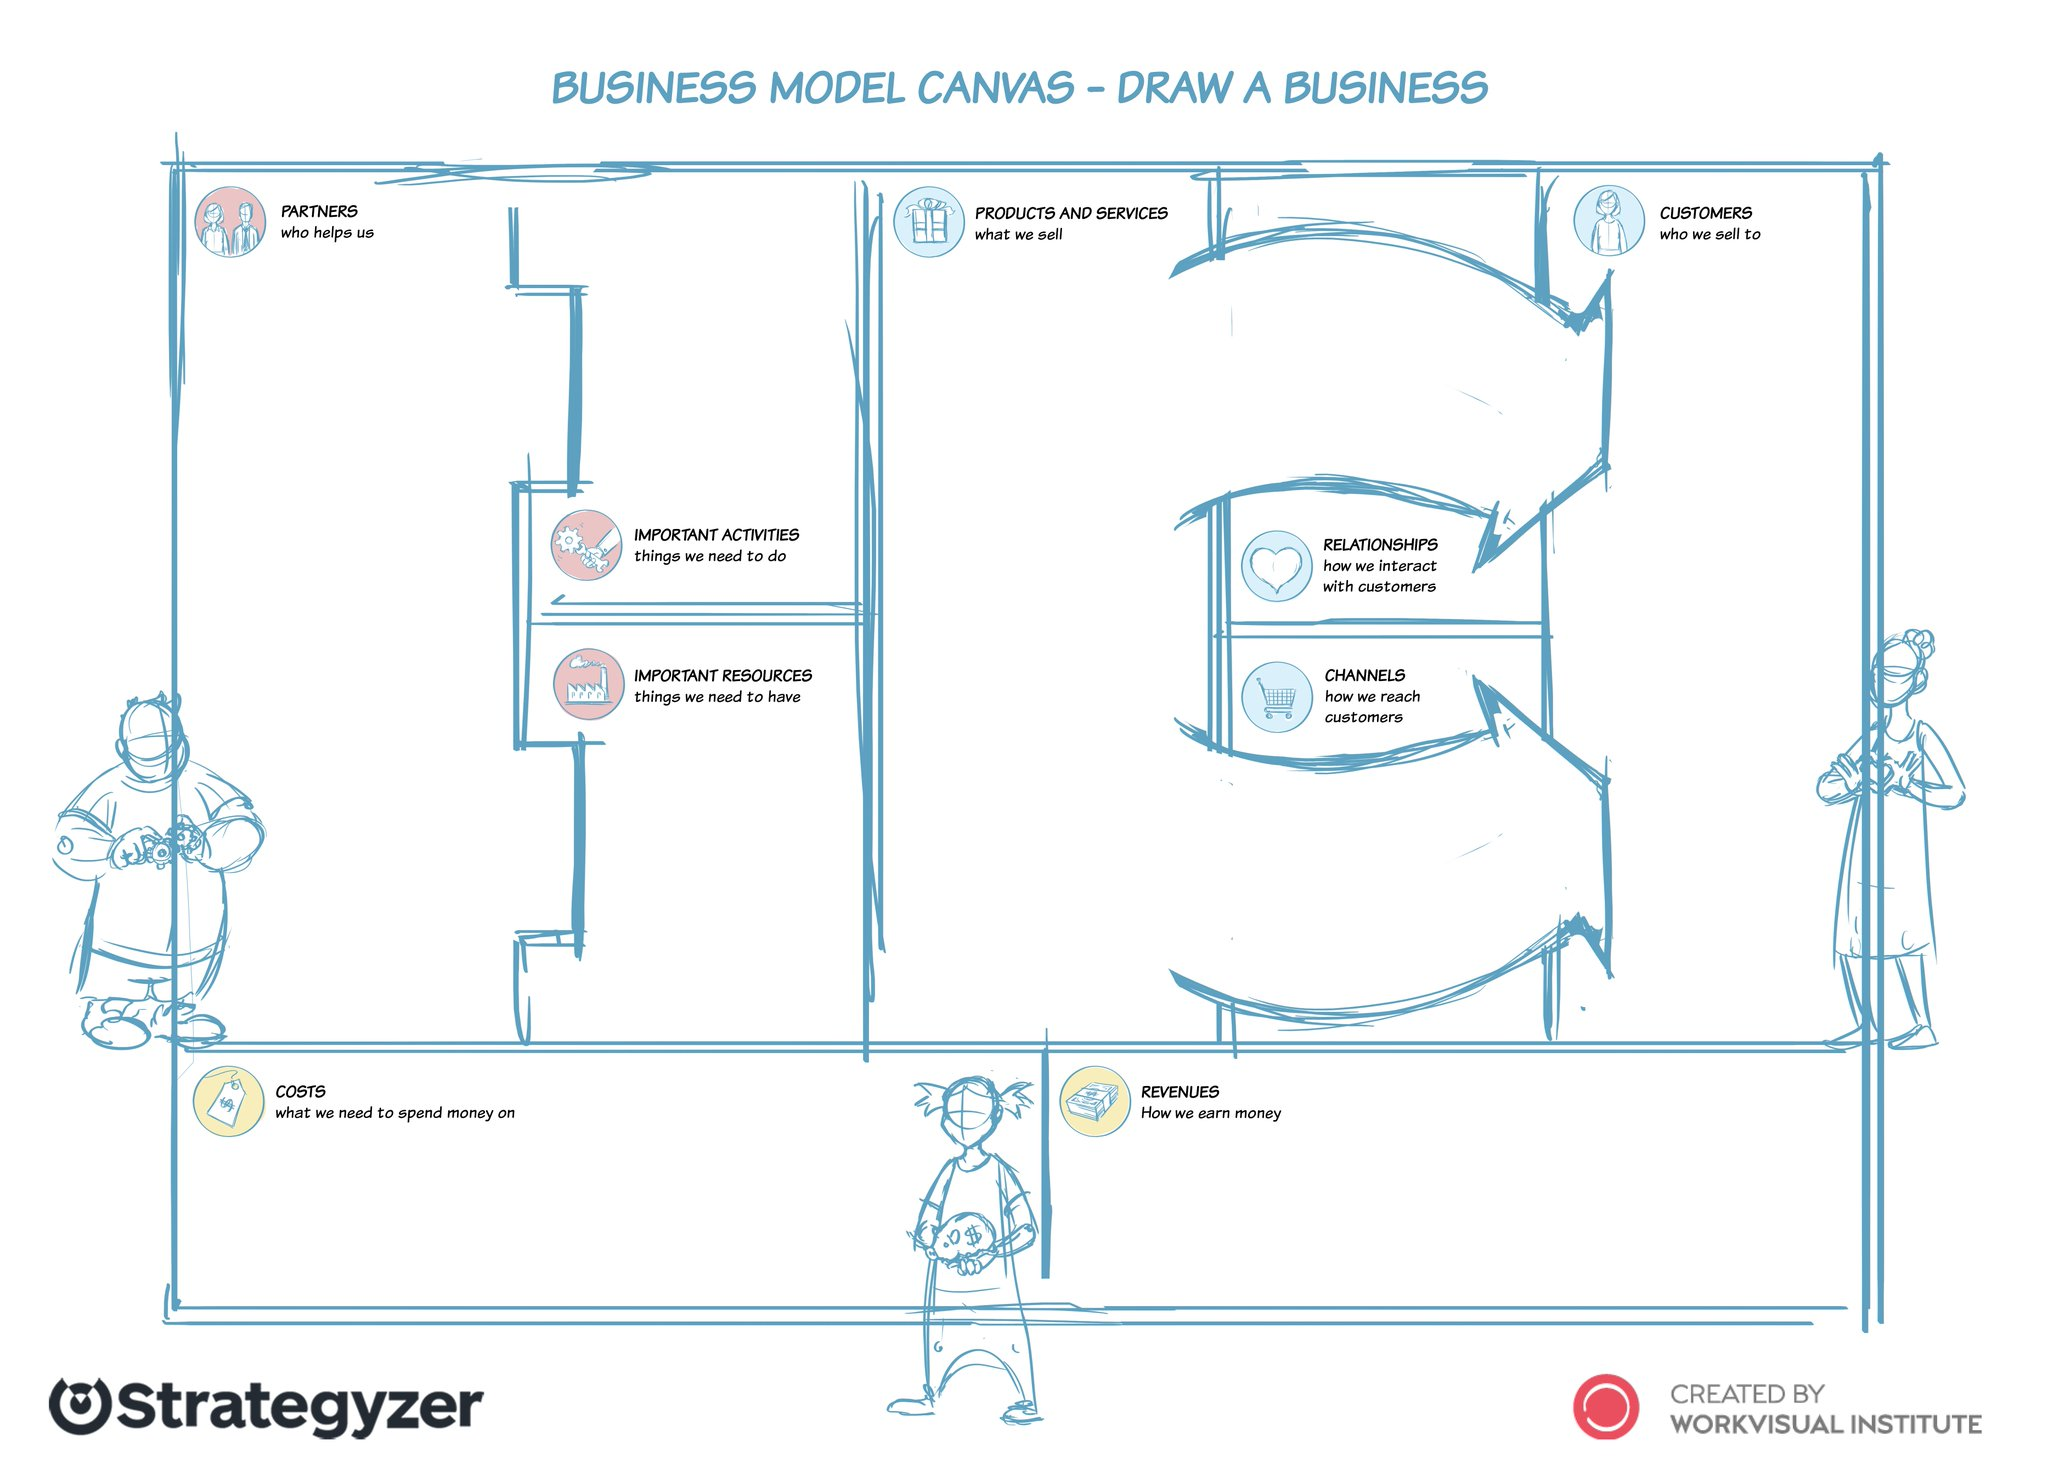 Alex Osterwalder On Twitter Business Model Canvas For Kids Prototype By Holgernilspohl Team Thoughts